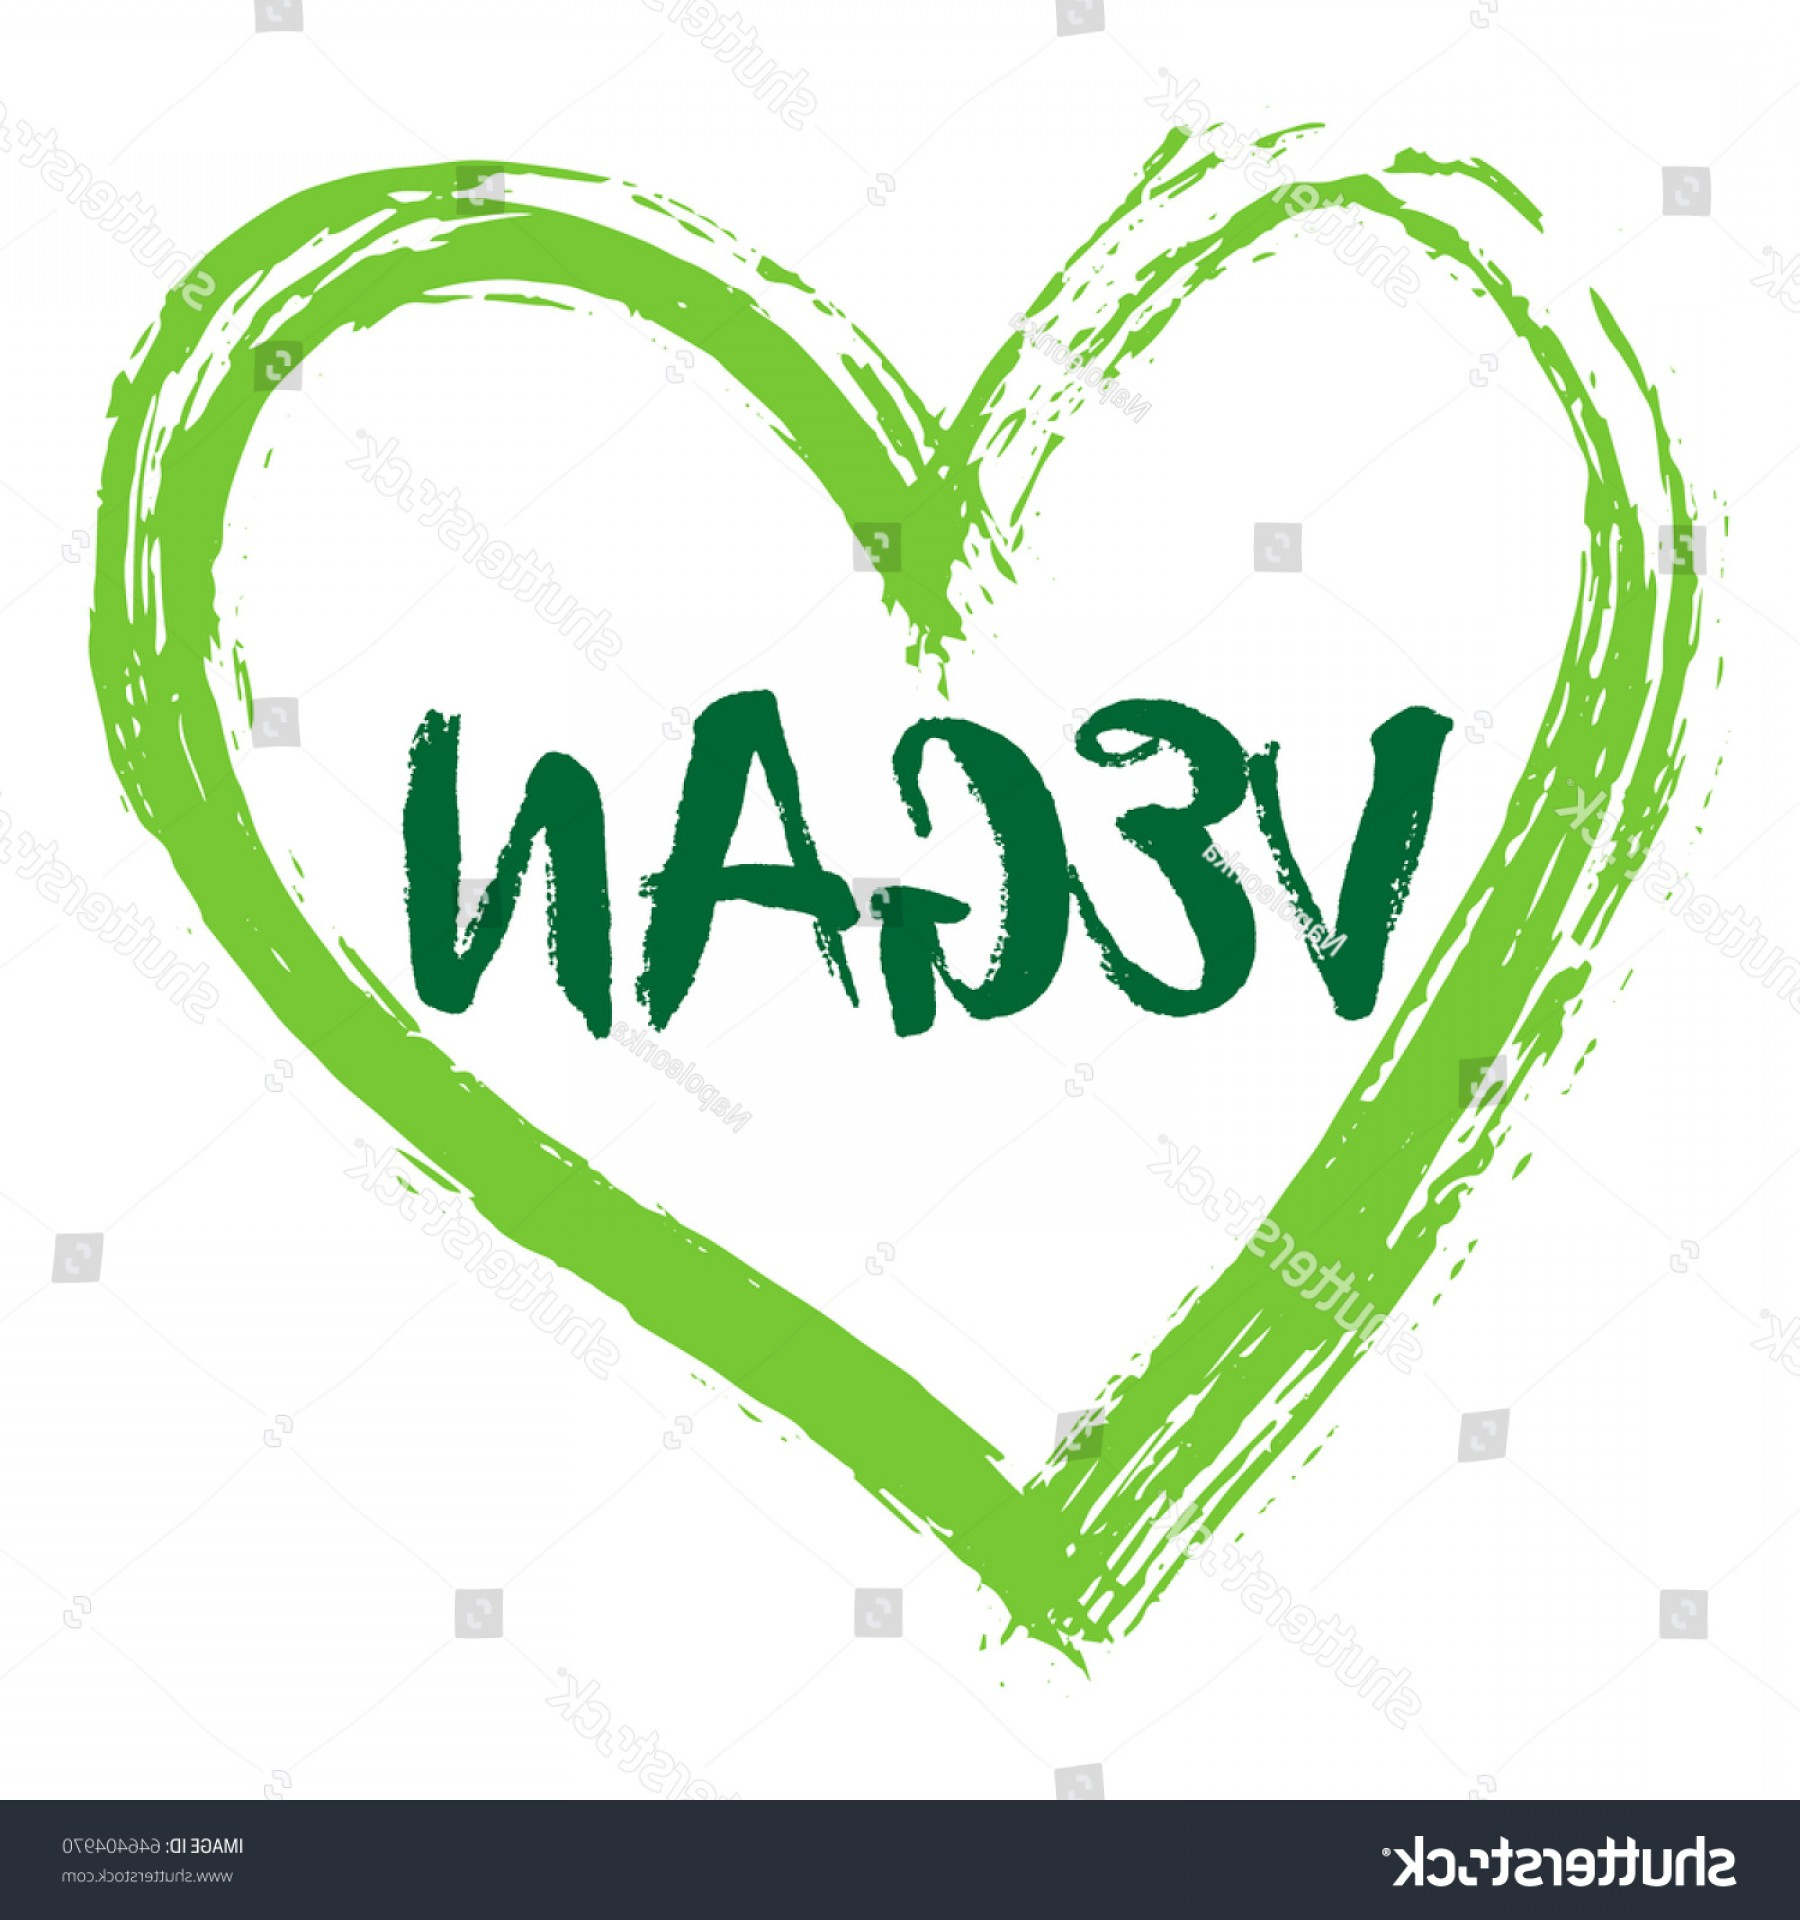 Vegan Heart Vectors: Green Vector Vegan Heart Logo Healthy